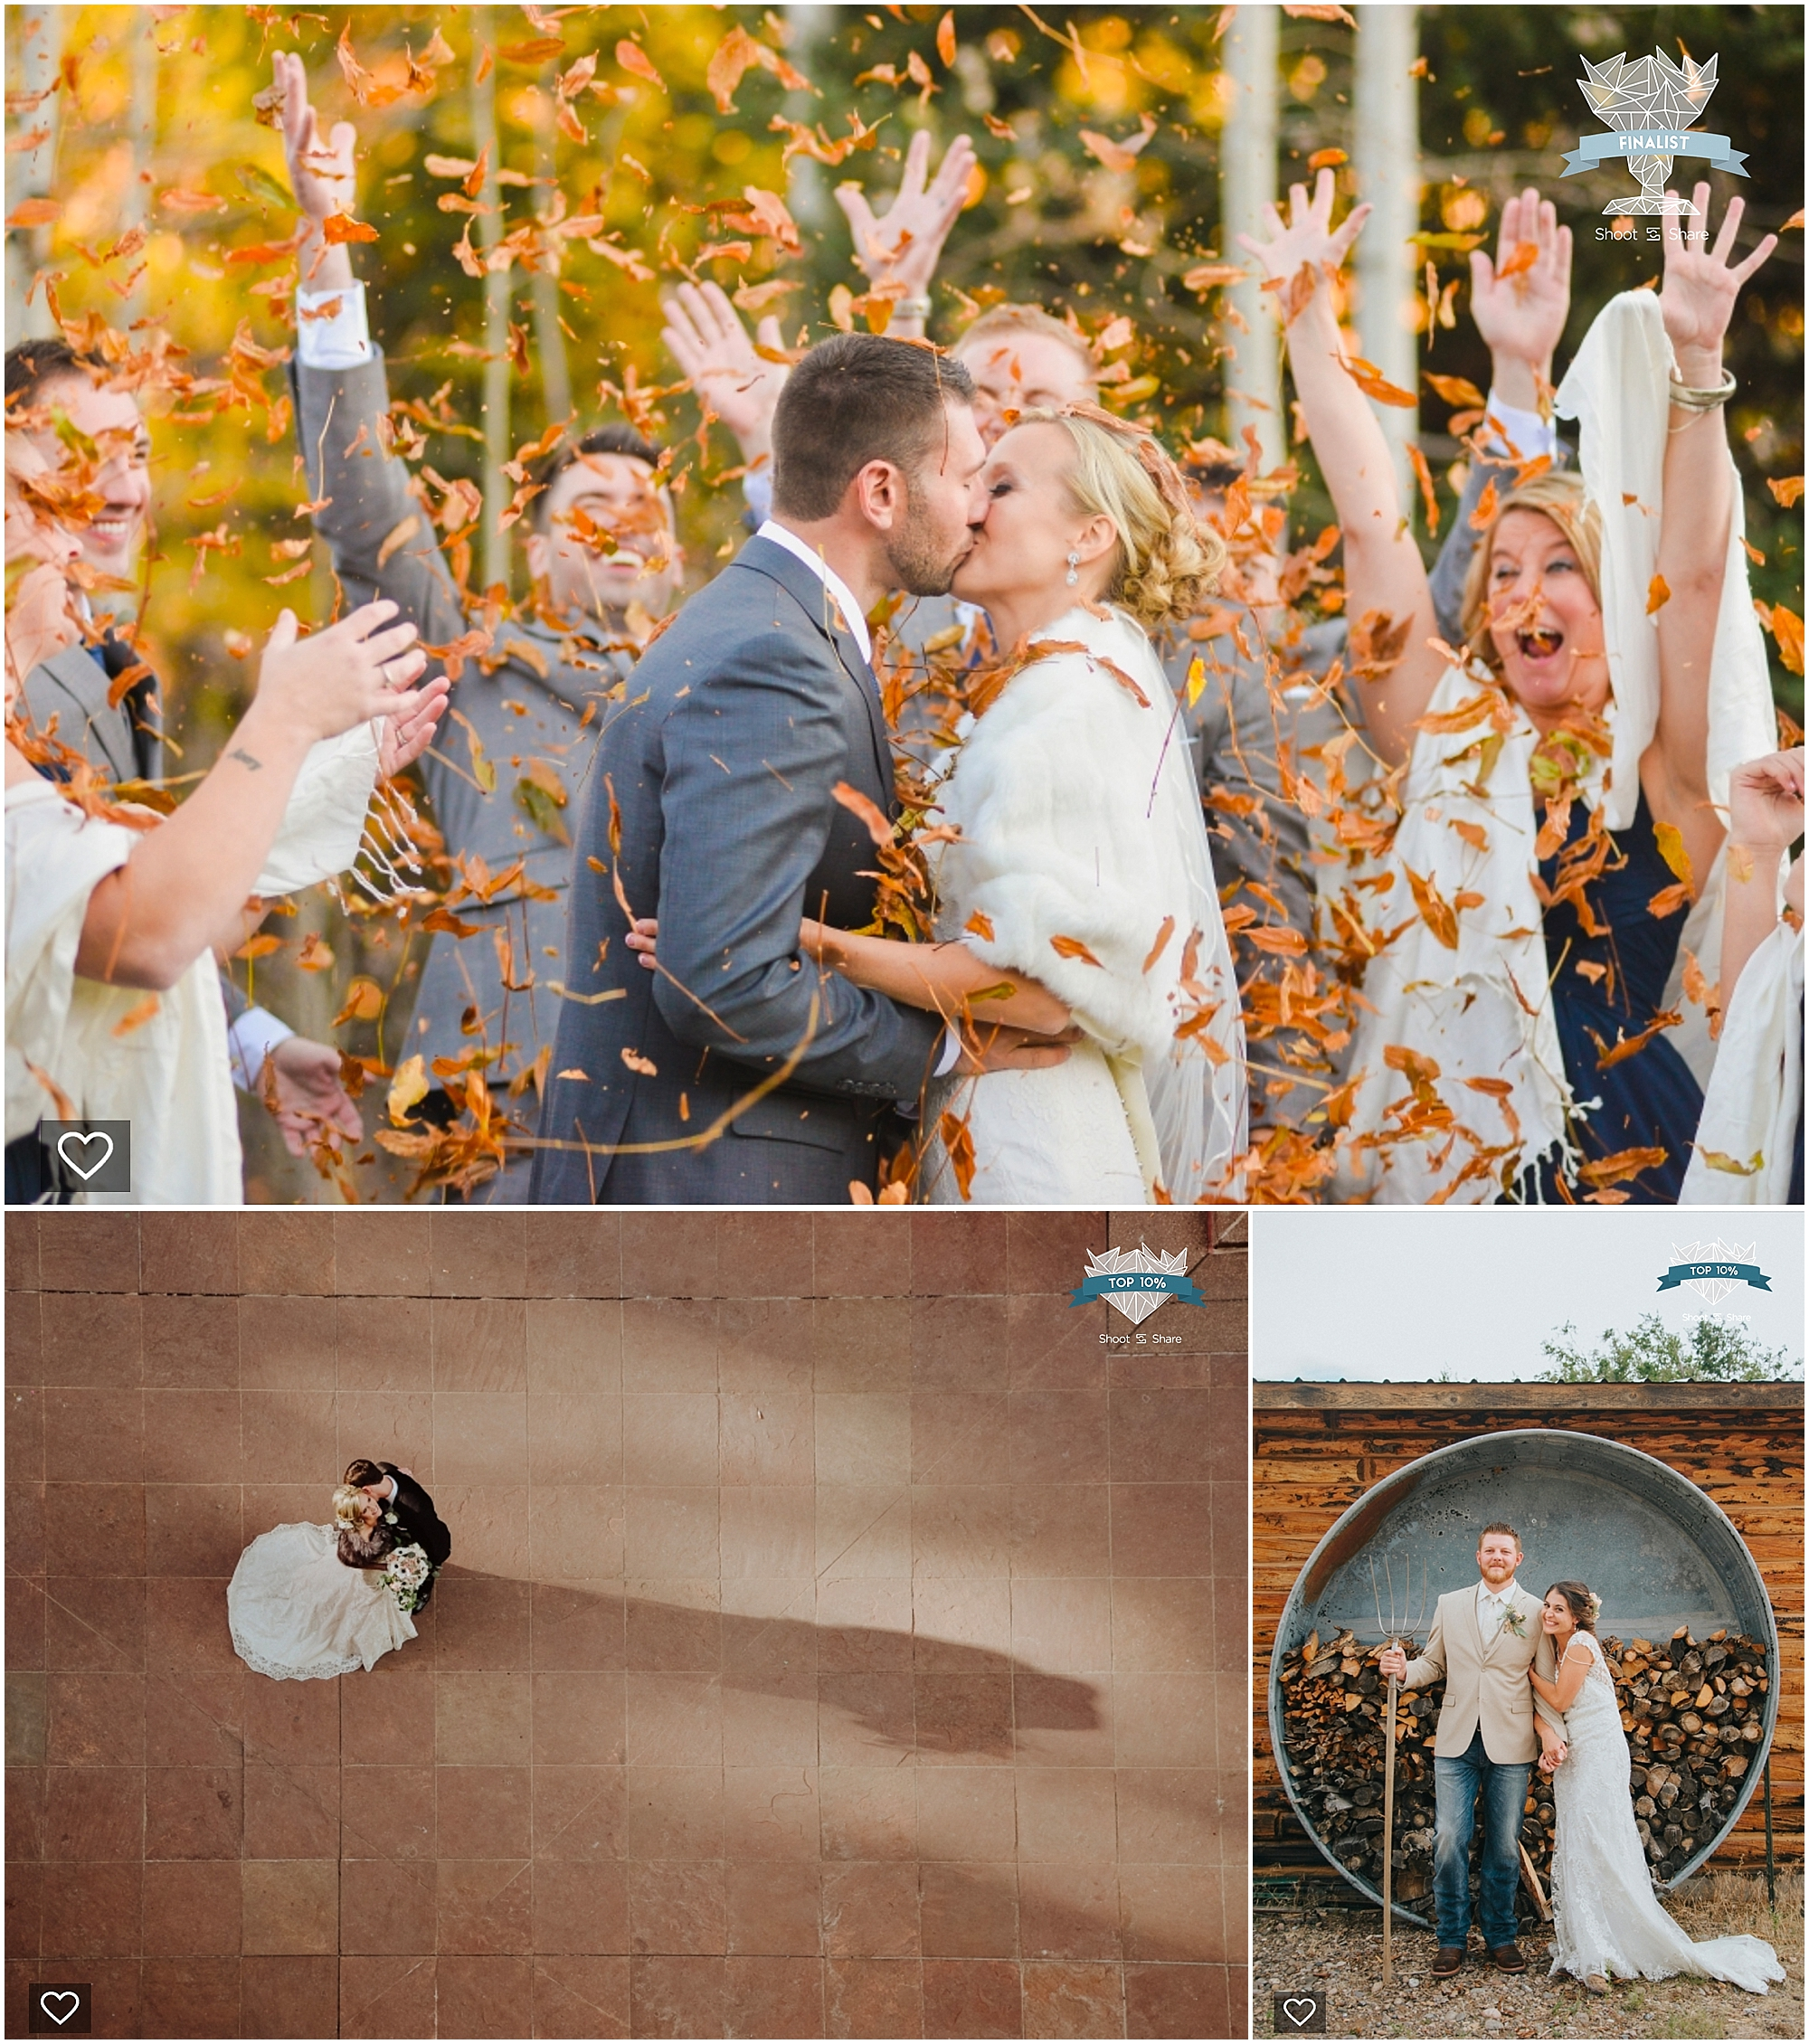 shoot and share, colorado wedding pictures, denver wedding pictures, colorado wedding photographer, fall wedding pictures, yellow leaves, leaves falling